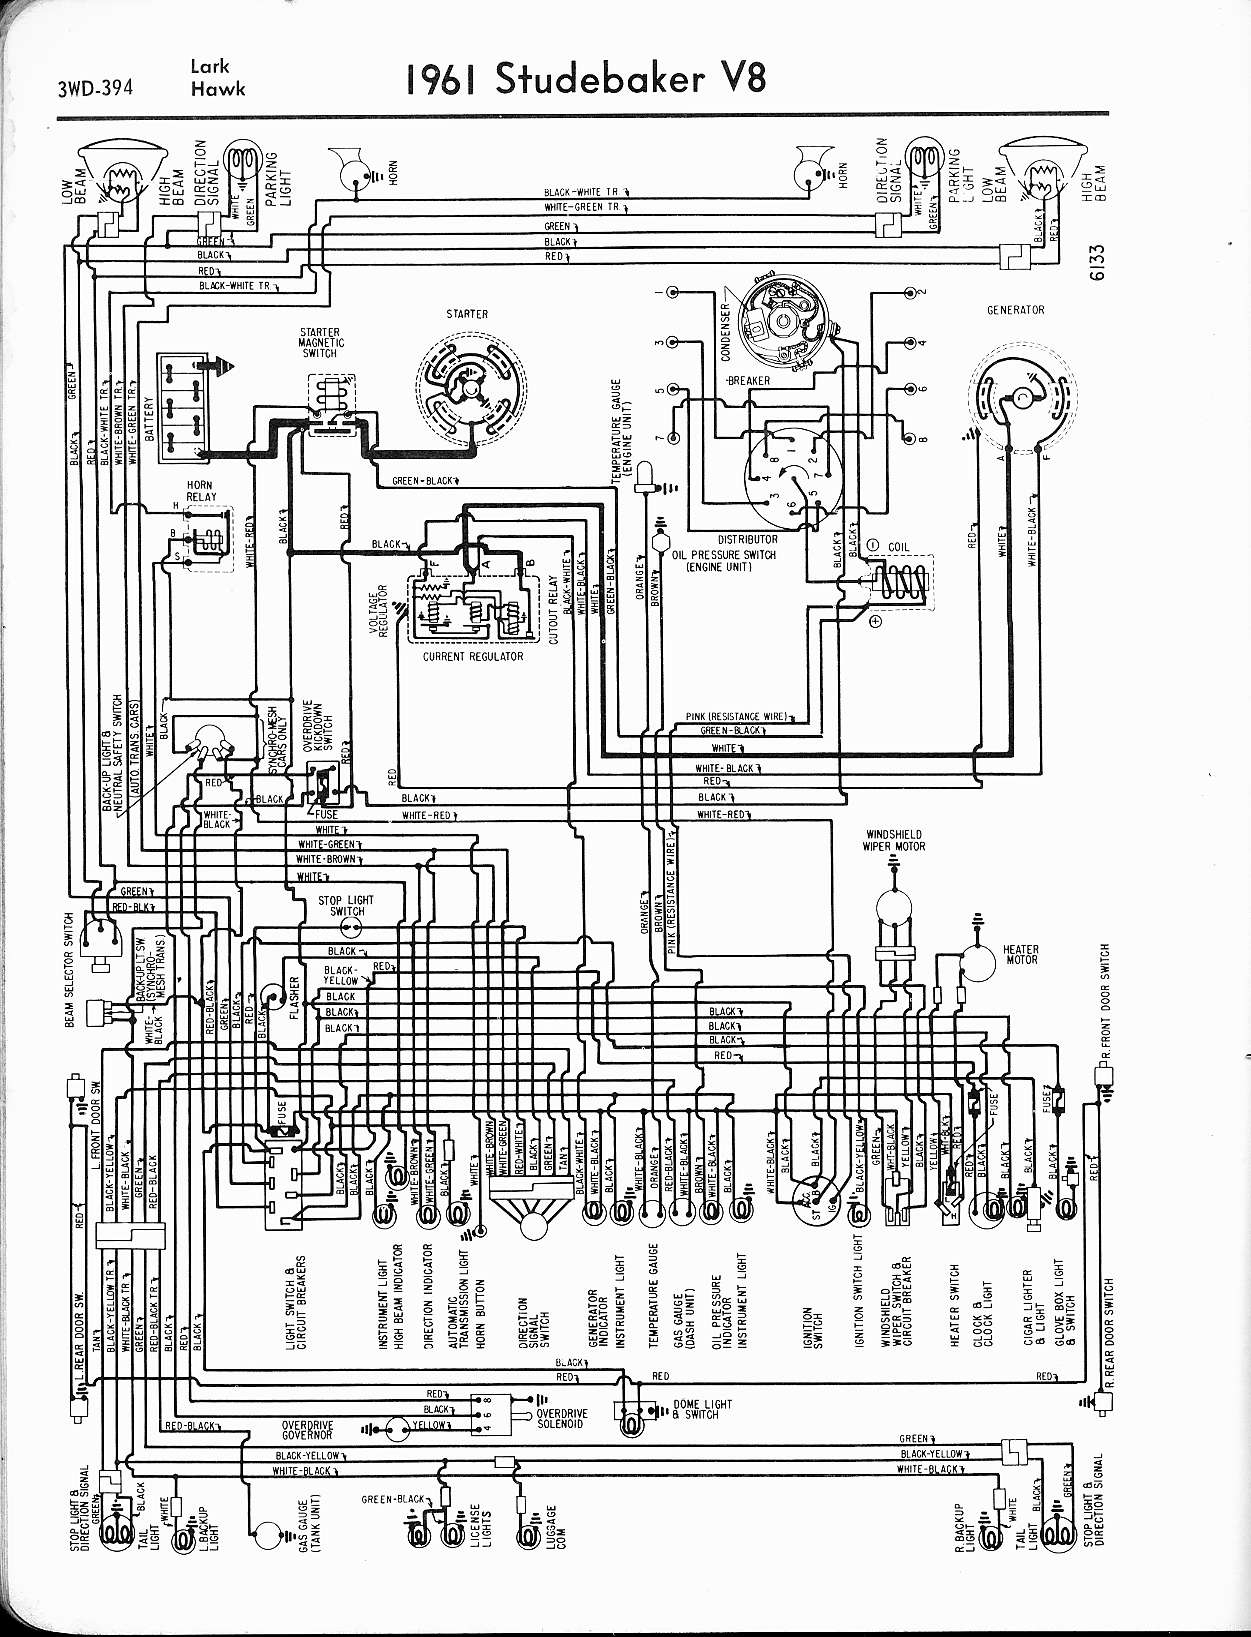 International Truck Wiring Diagram Manual | Free Wiring ...